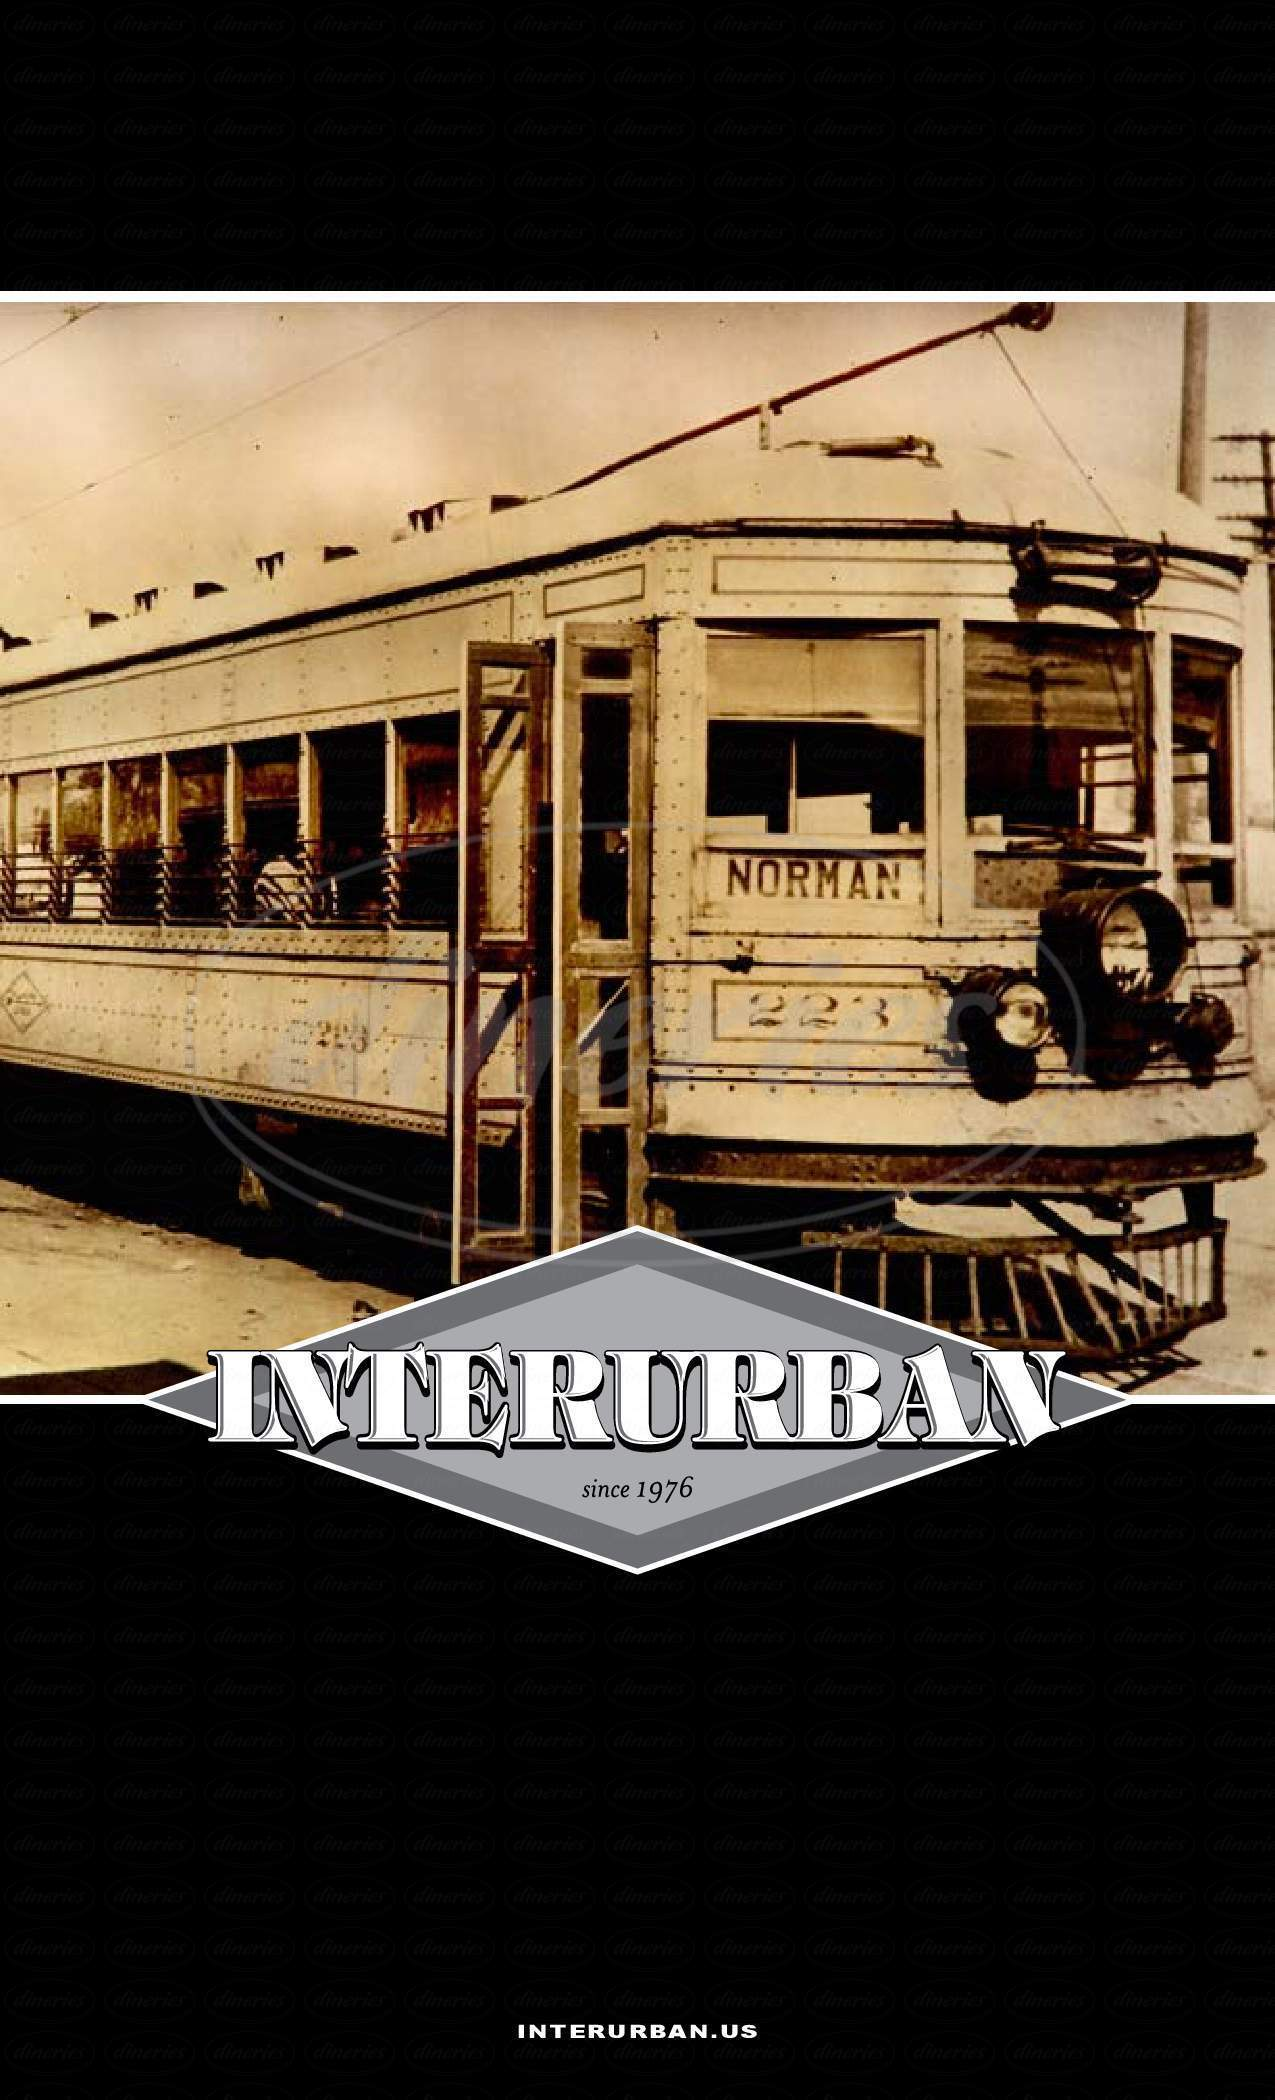 menu for Interurban Restaurant